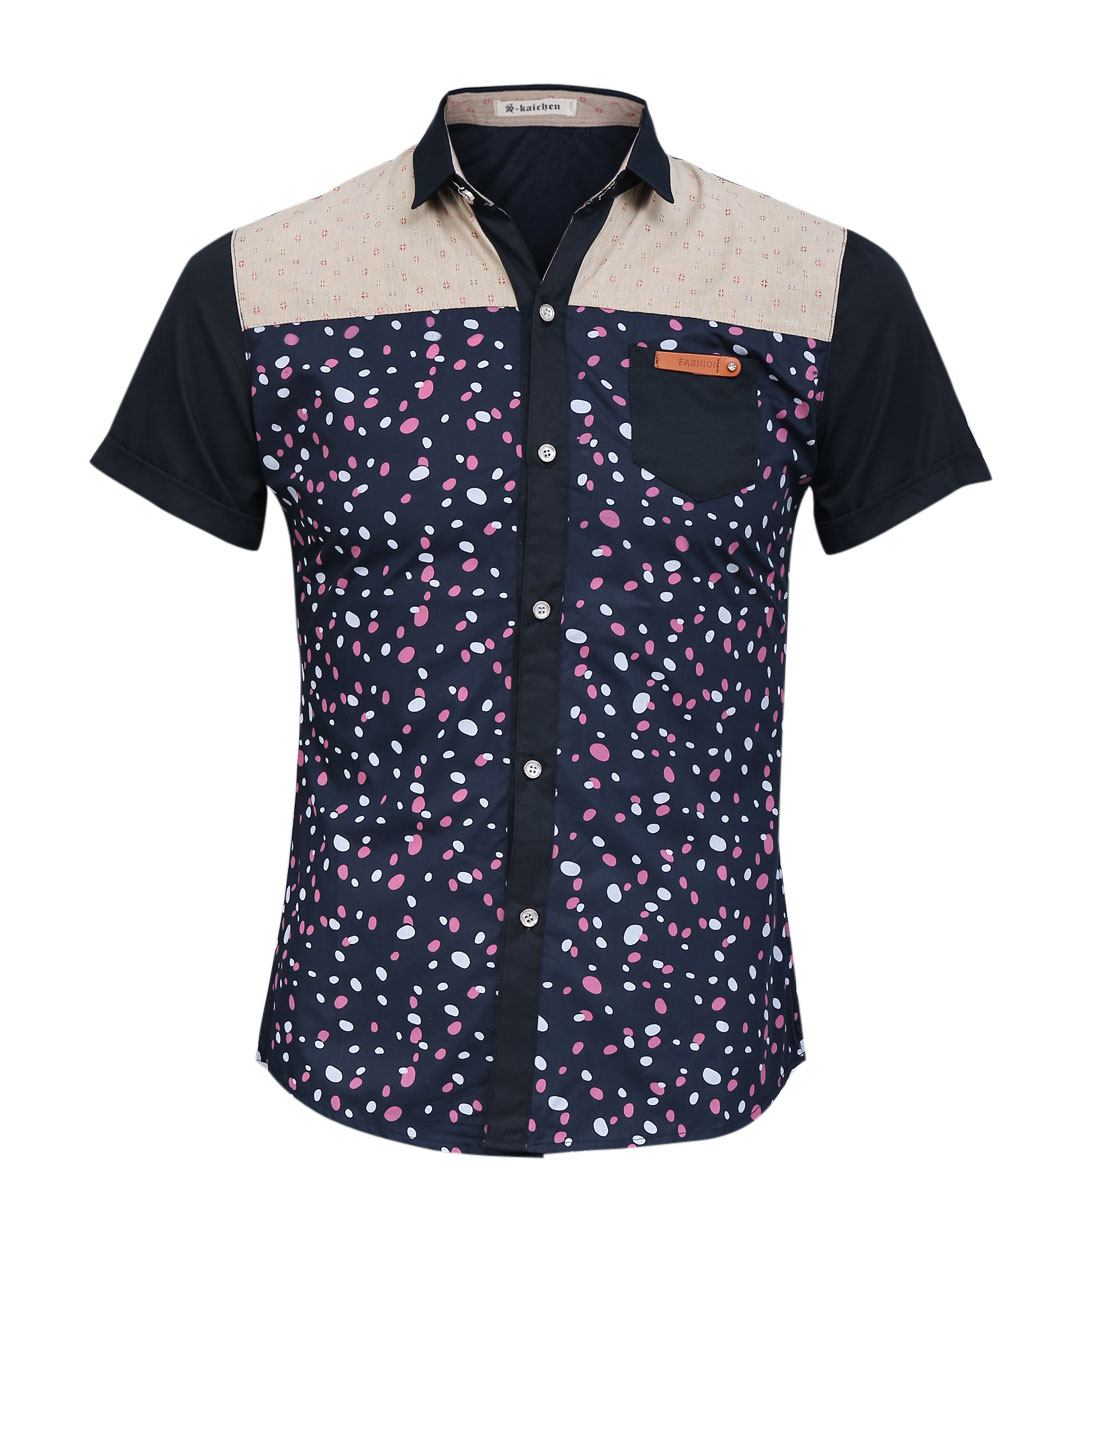 Men Spots Pattern Button Closed Short Sleeve Casual Shirt Navy Blue S